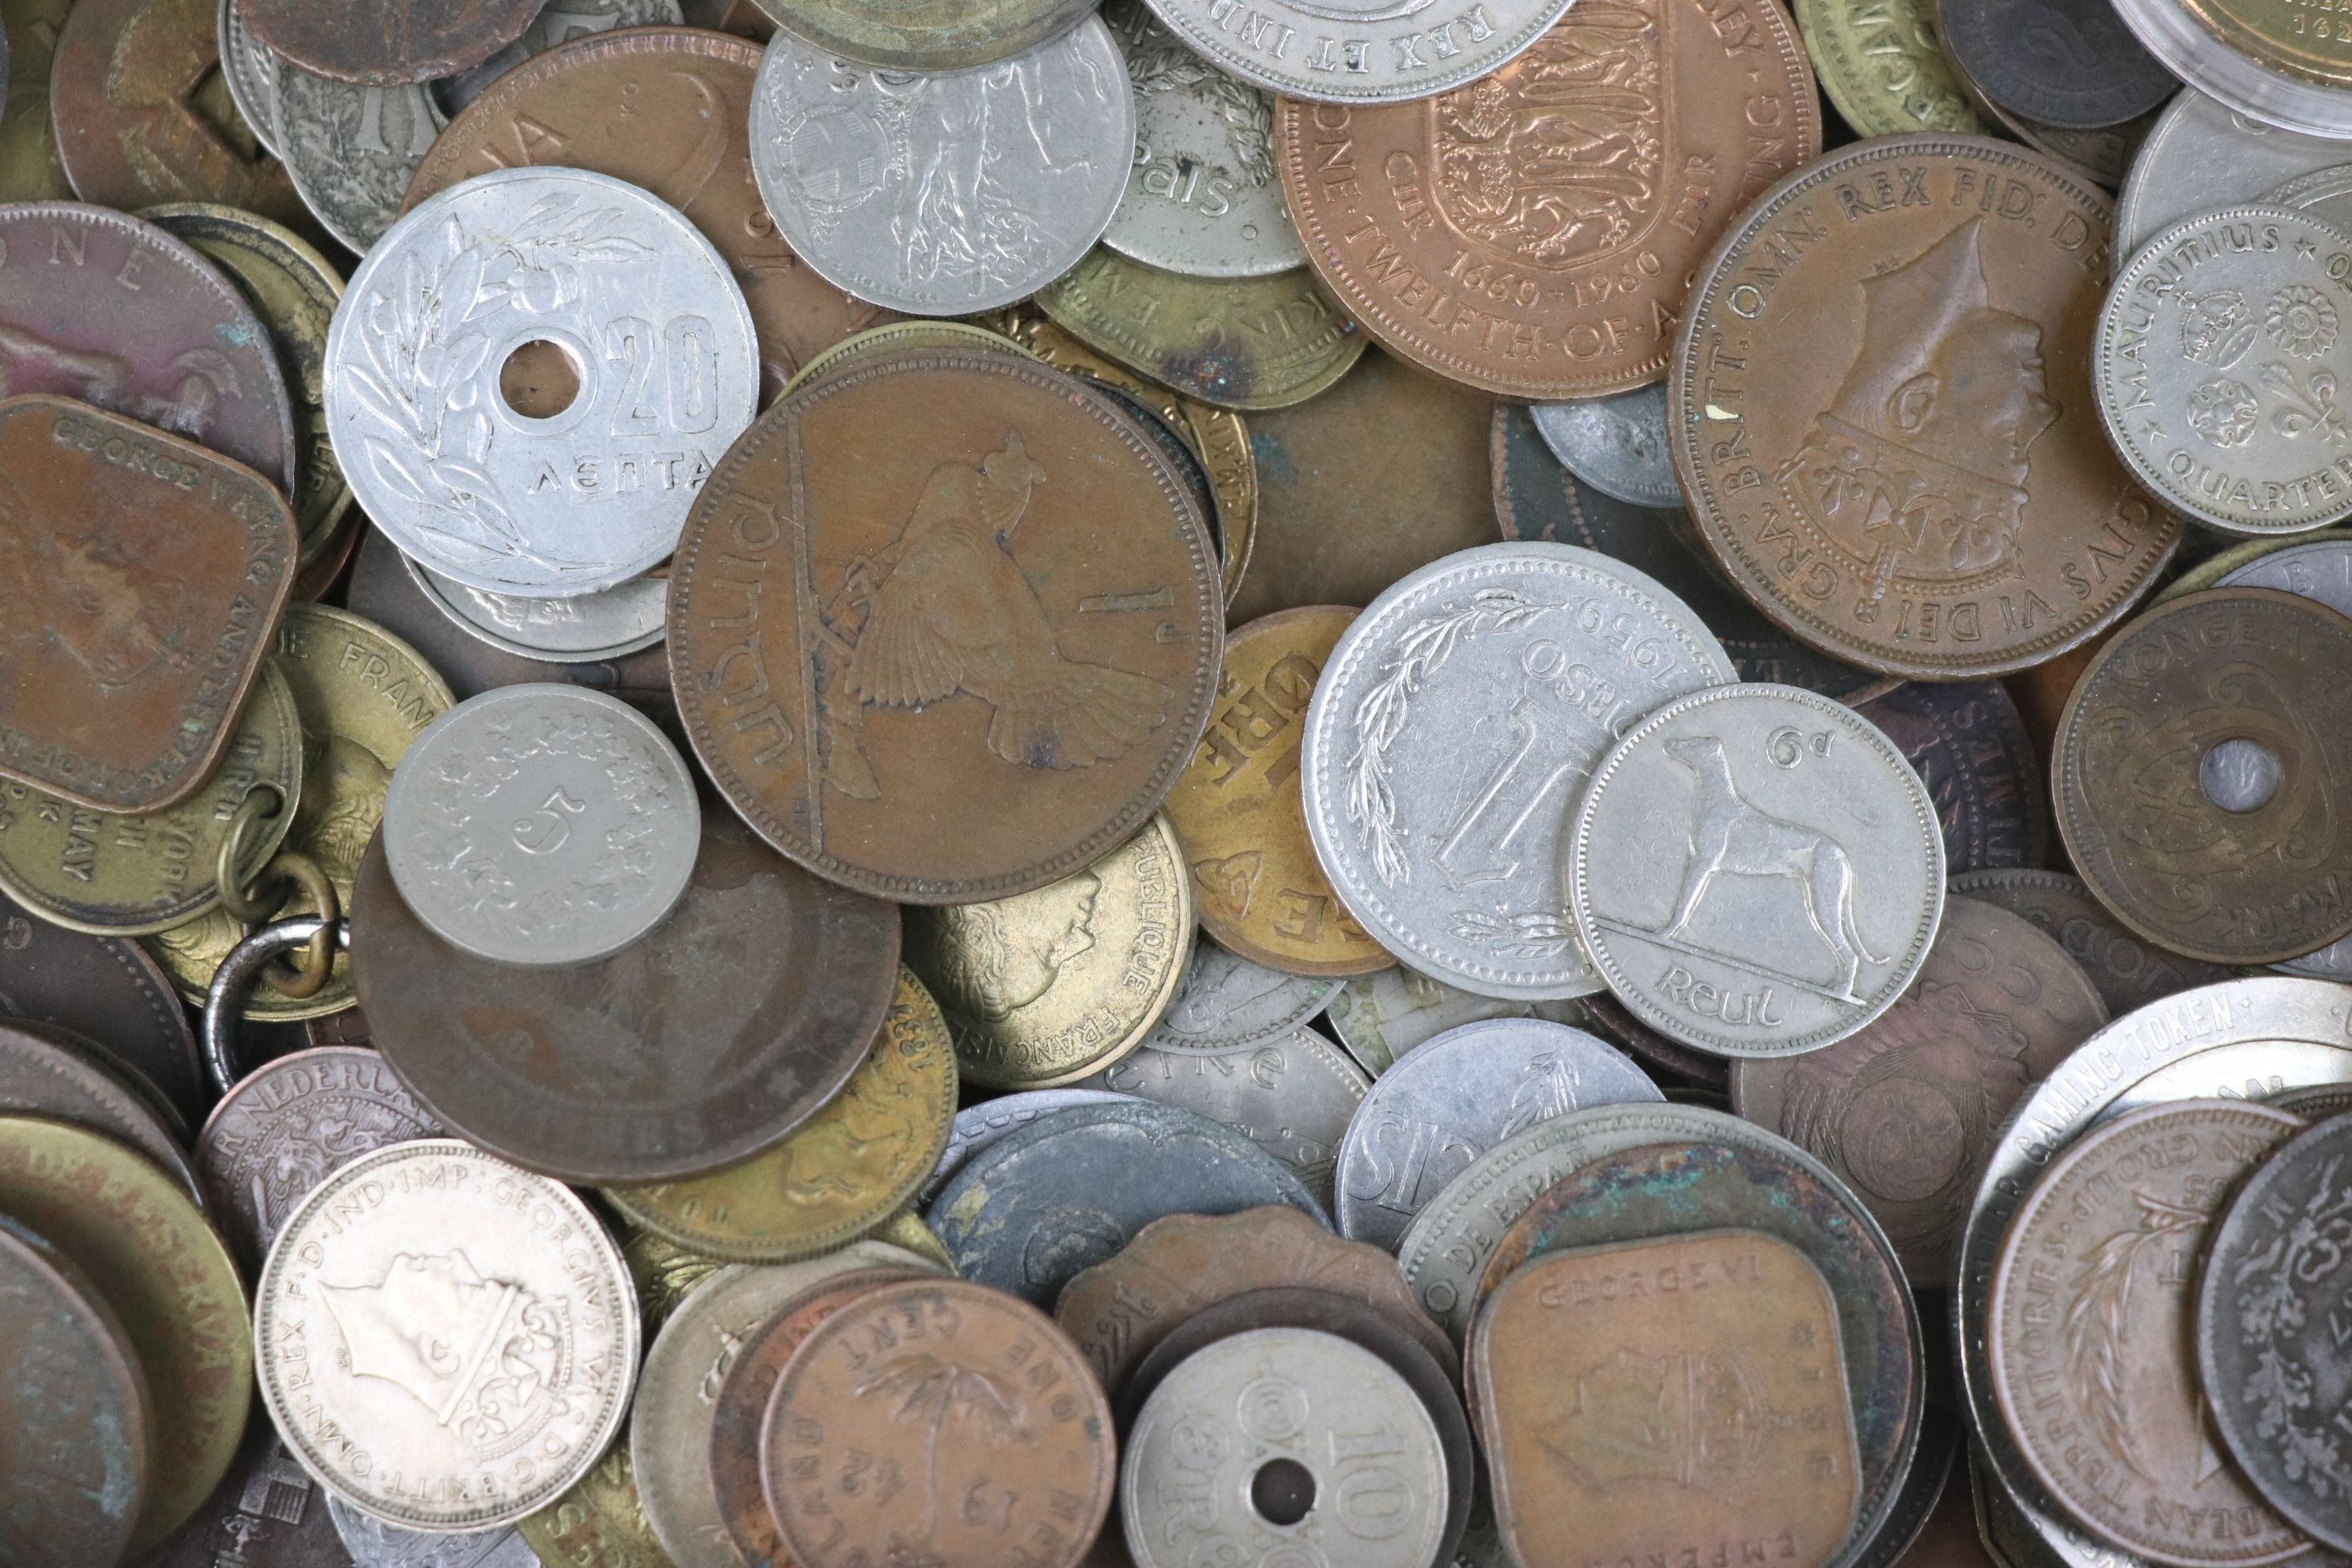 A collection of mixed 19th and 20th century British and world coins. - Image 6 of 7